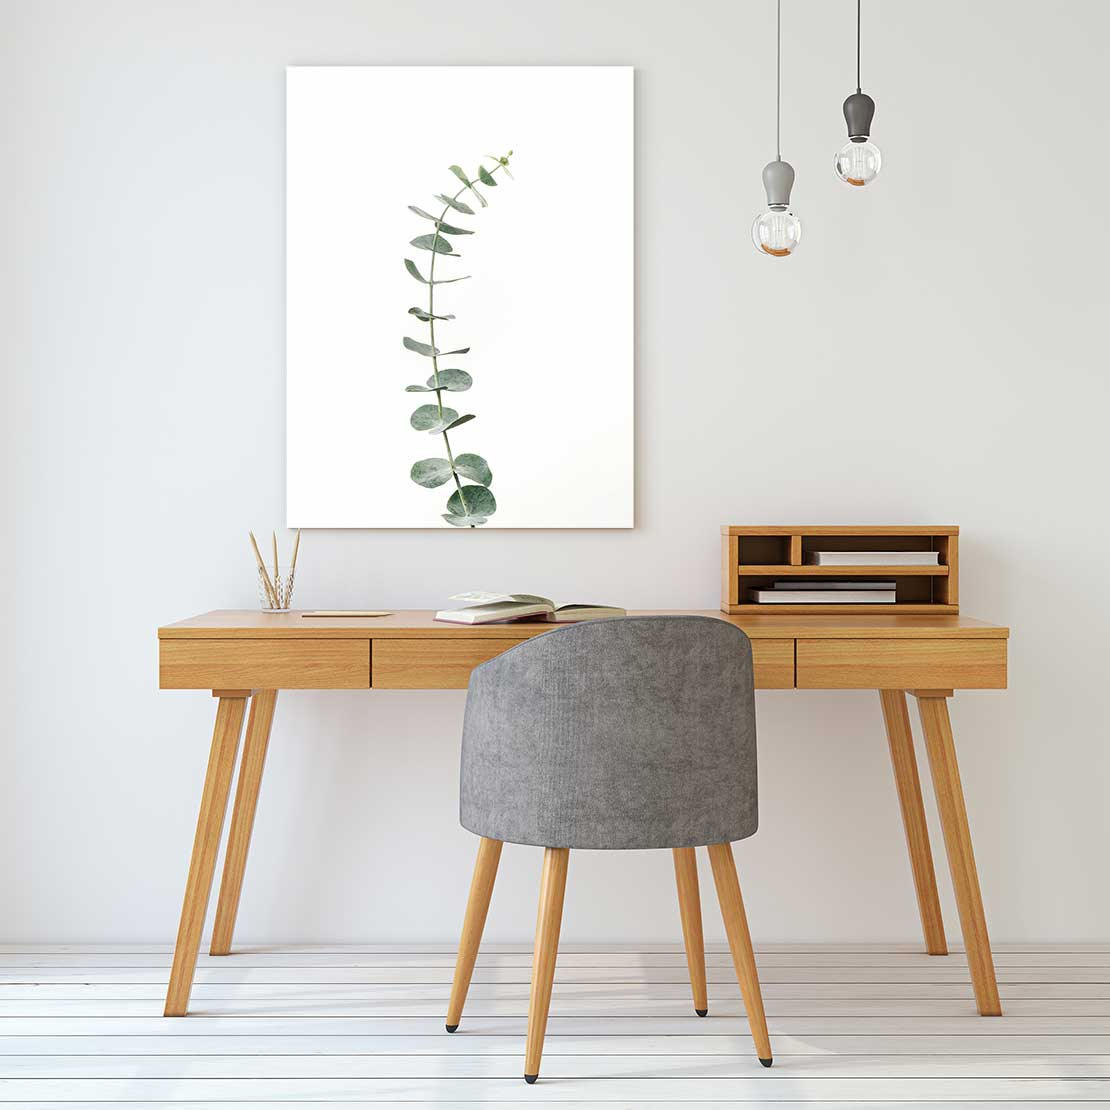 Eucalyptus #2 - Canvas Print by Dan Hobday | Art Bloom Canvas Art